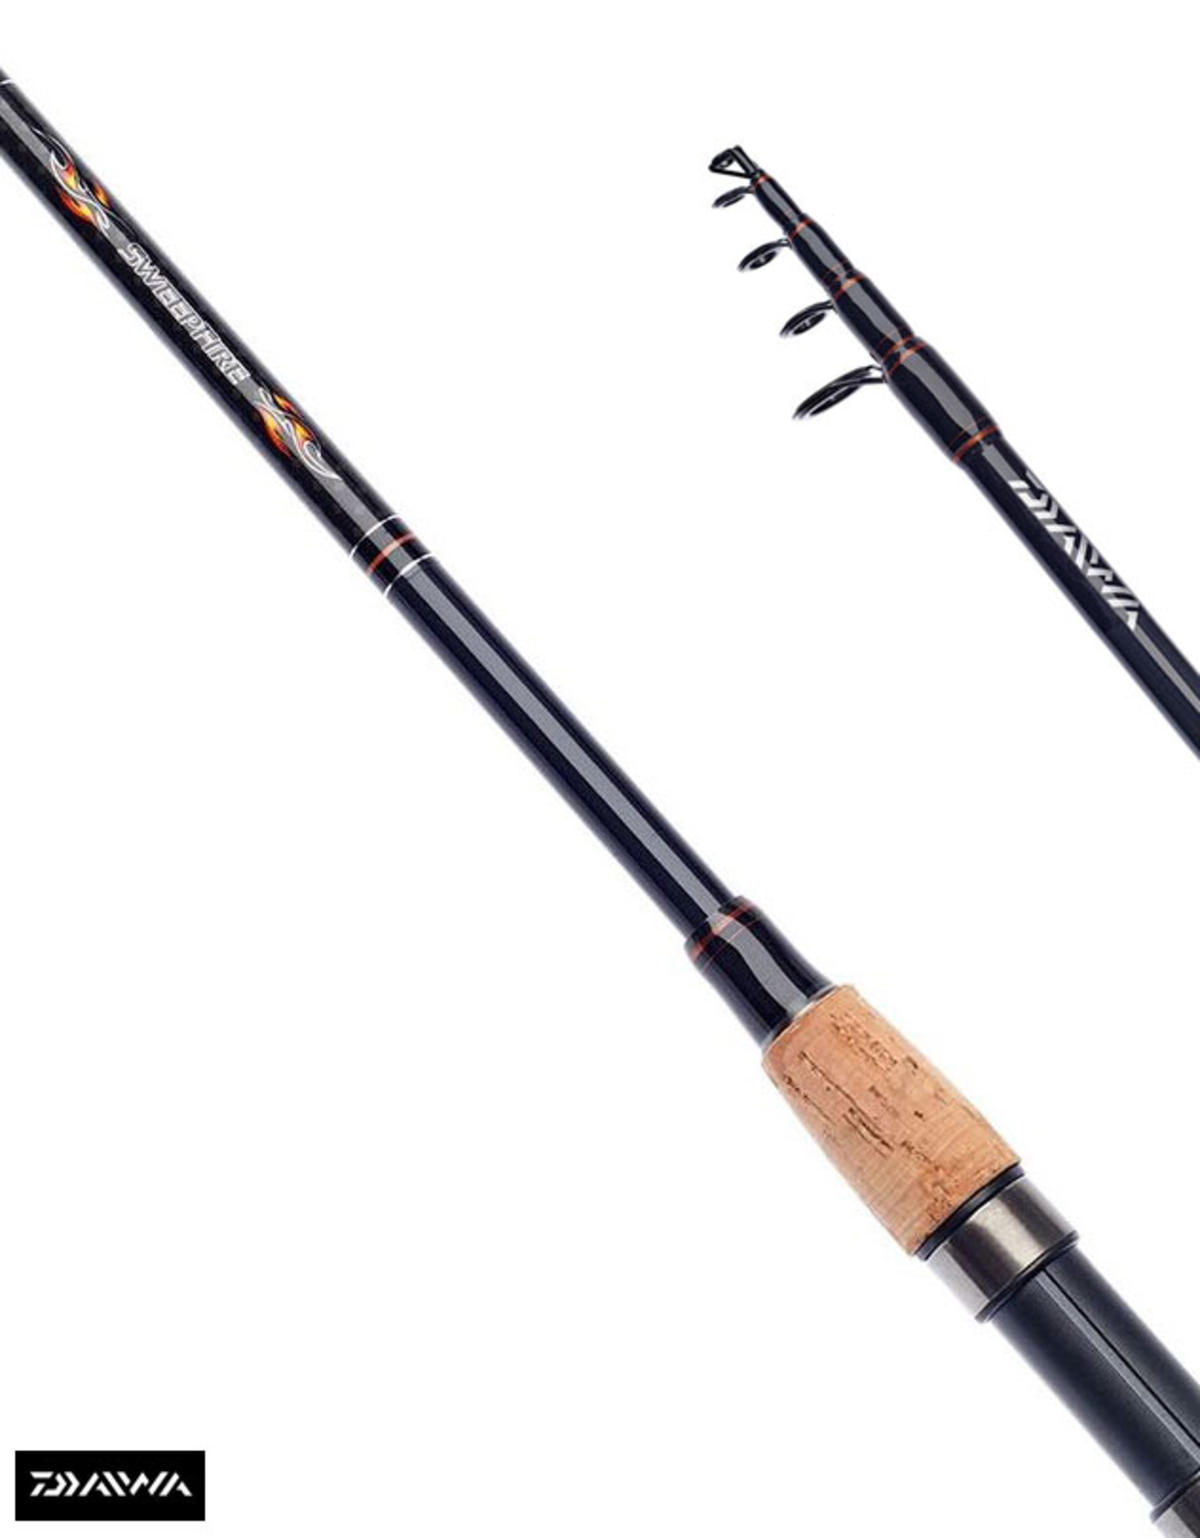 New Daiwa Sweepfire Telescopic Spinning Fishing Rods 8ft - 10ft - All Models